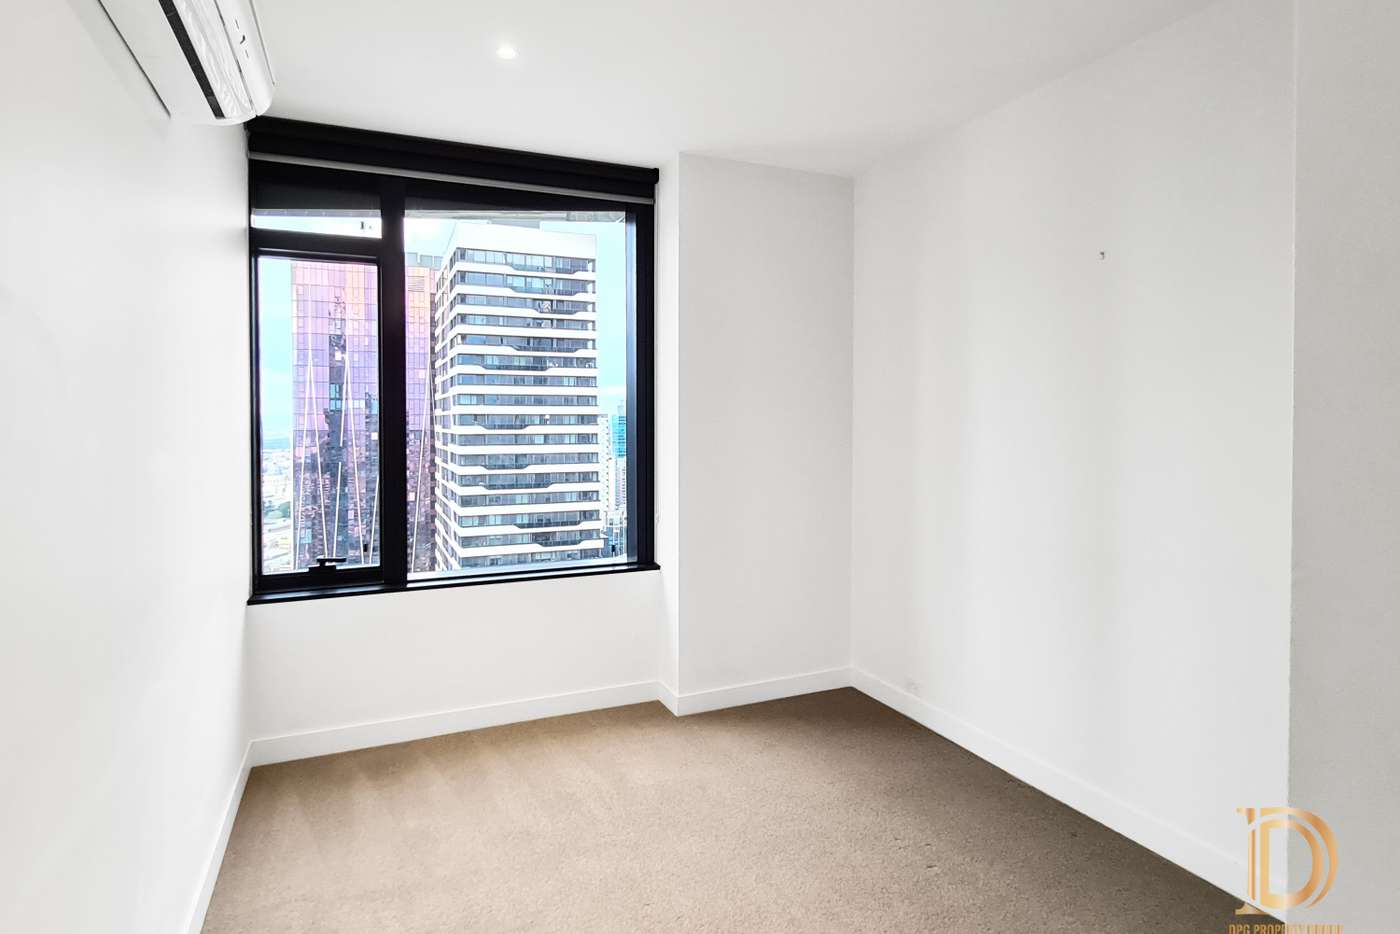 Seventh view of Homely house listing, 4404/120 A'Beckett Street, Melbourne VIC 3000